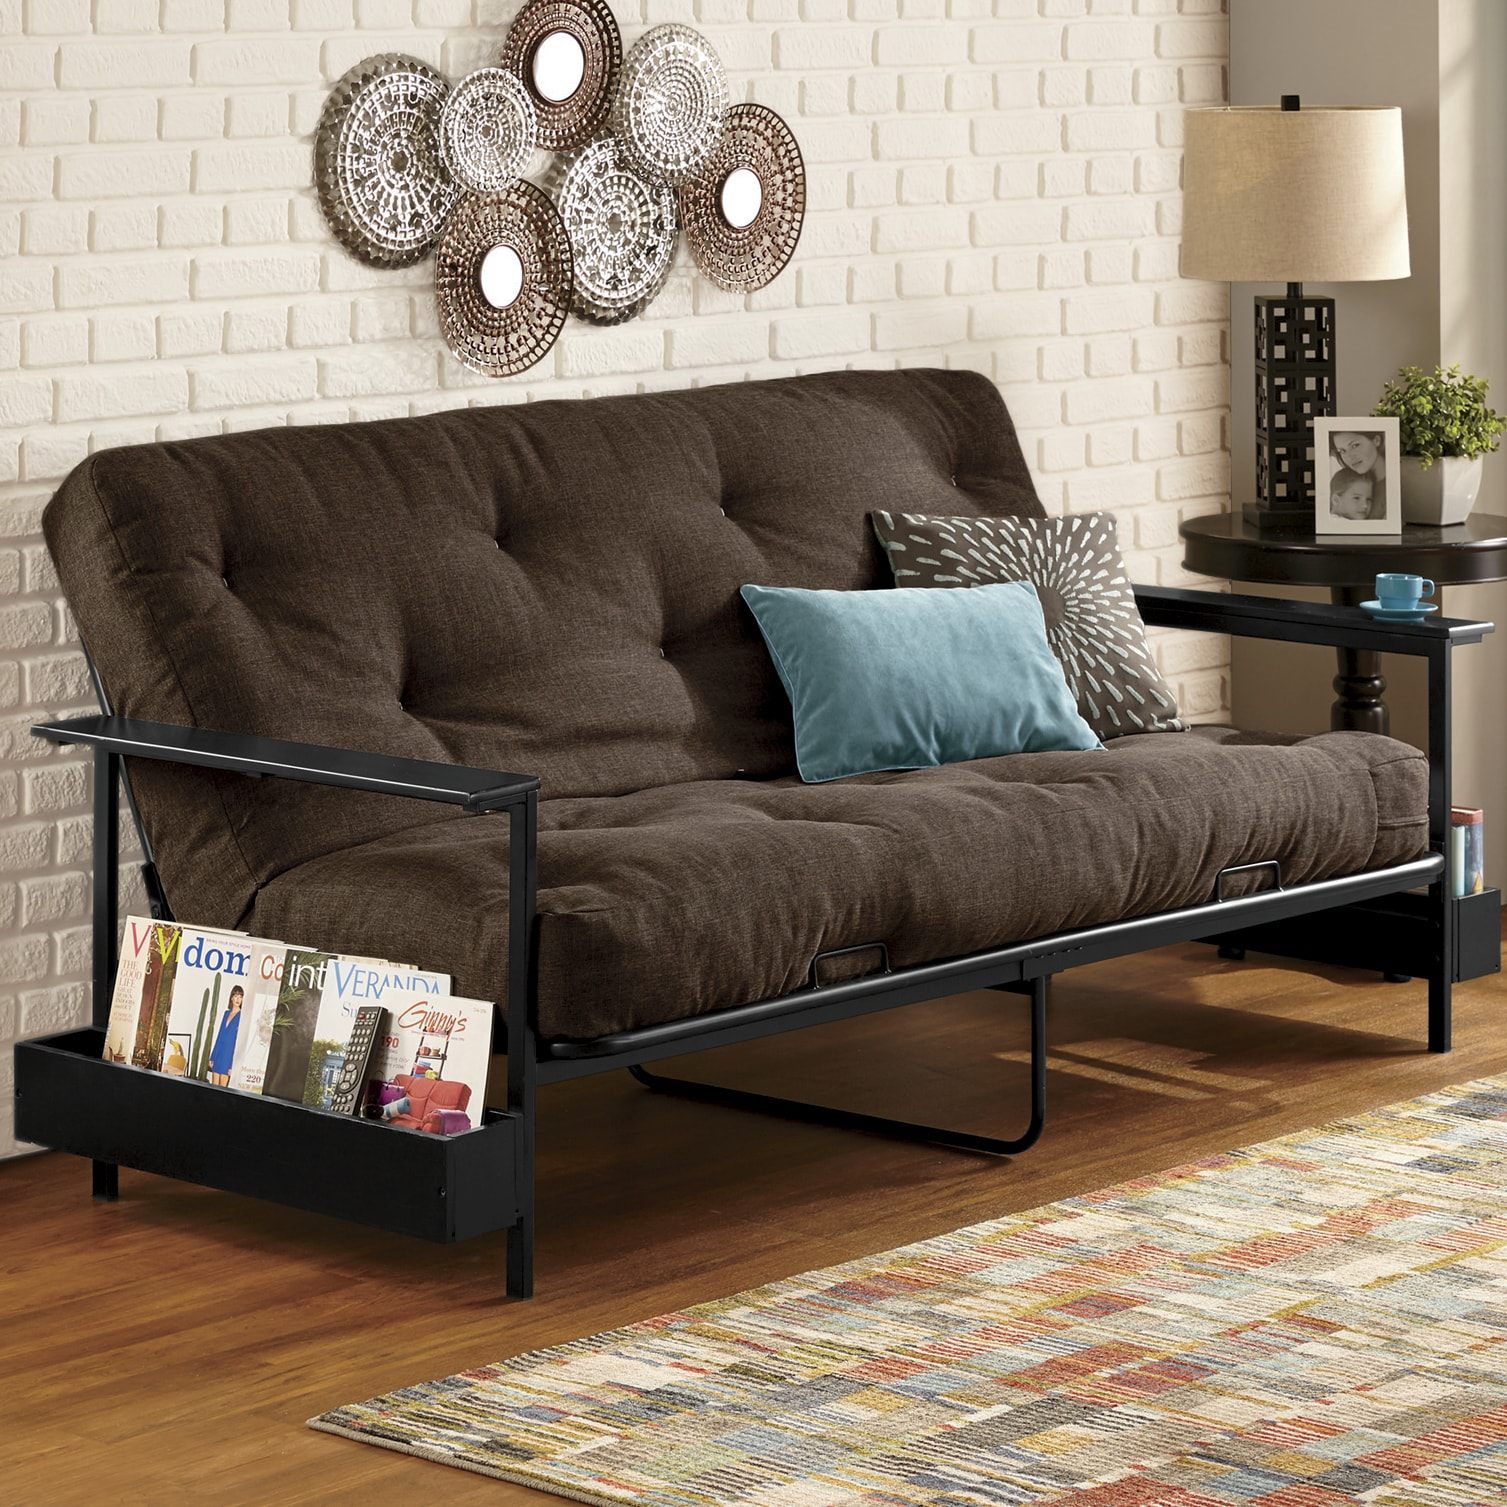 teal living room chair chairs design in nigeria furniture buy now pay later montgomery ward metal futon frame and double mattress by serta